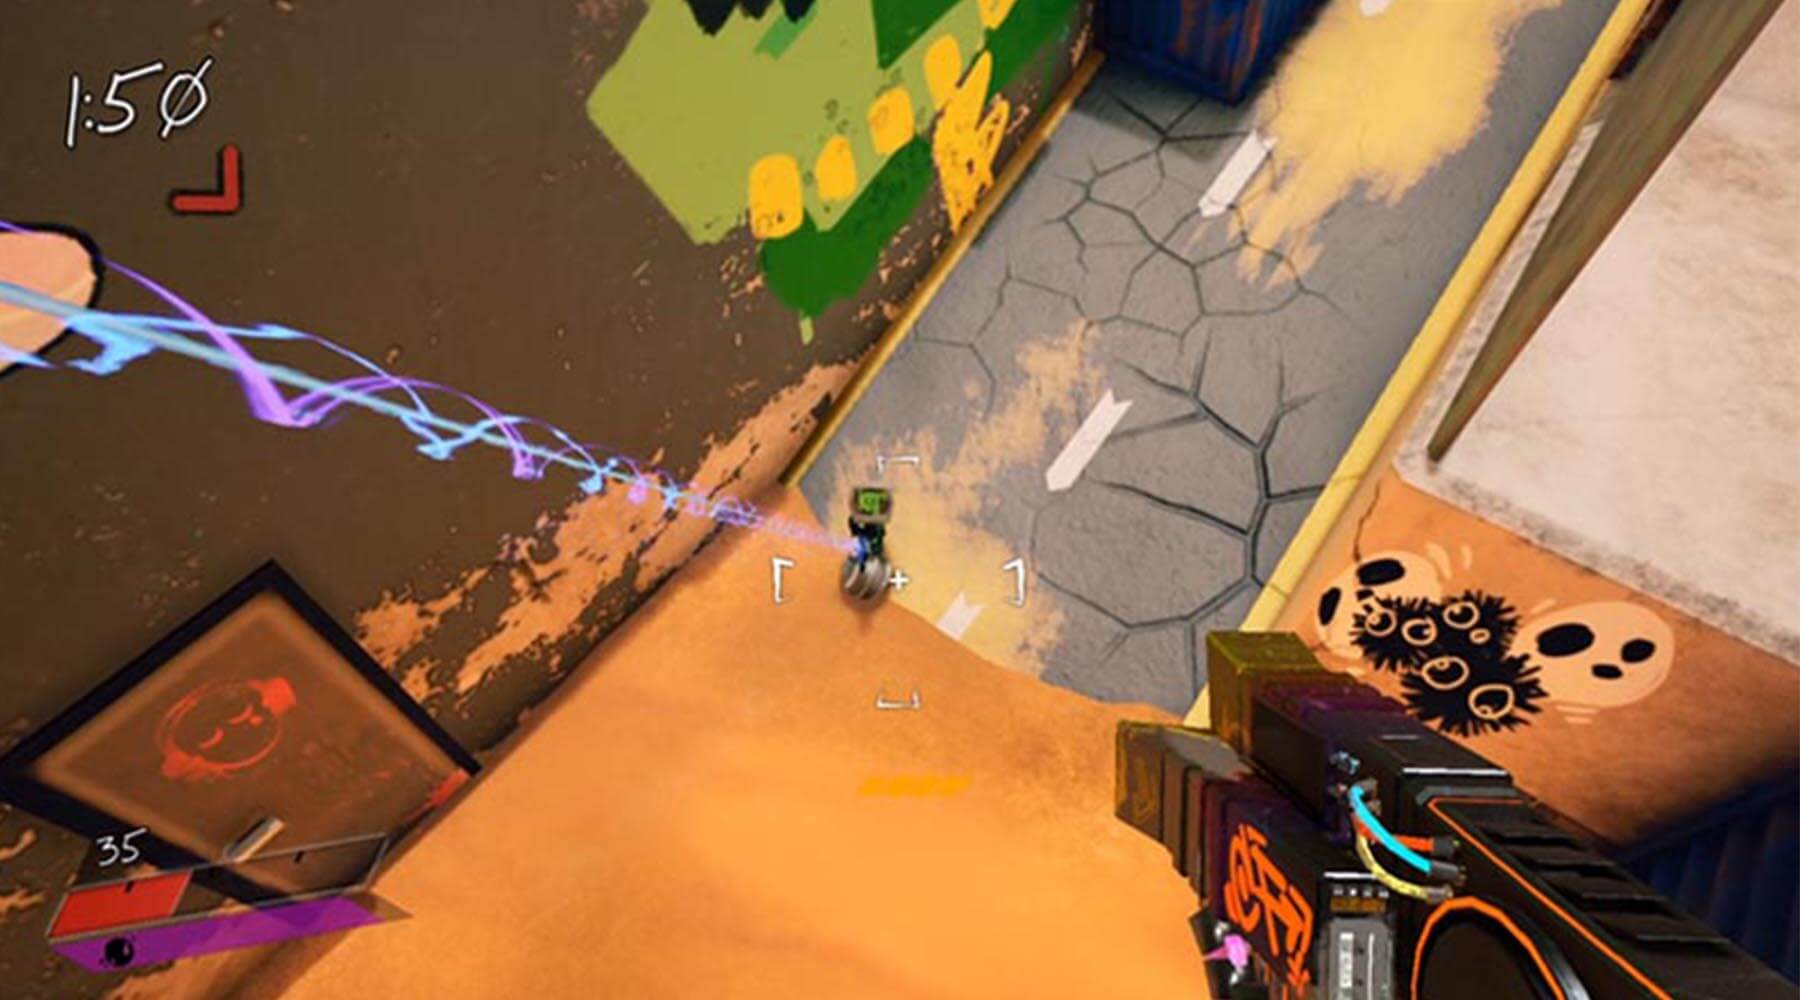 In-game screenshot of player, midair, aiming weapon's crosshair down at enemy robot.